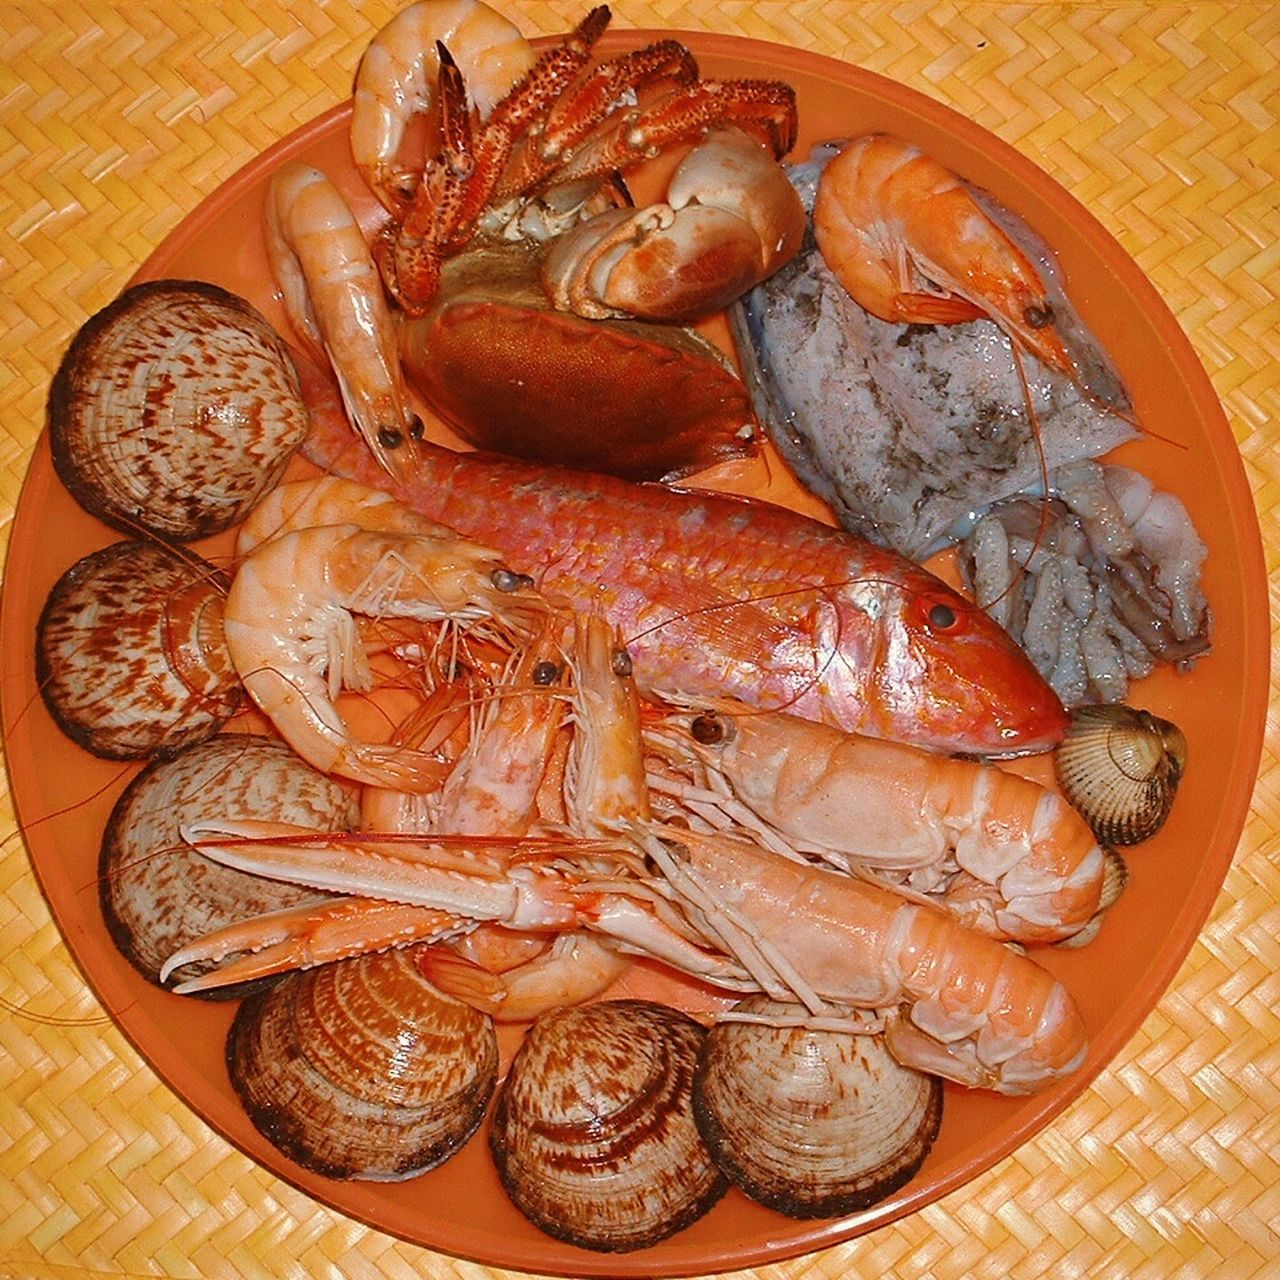 """""""Ready to cook SEAFOOD🐡 Seafoods Shrimps, Fish for a """" Dinner Date"""". Food Coolpix Eyeemfilter"""